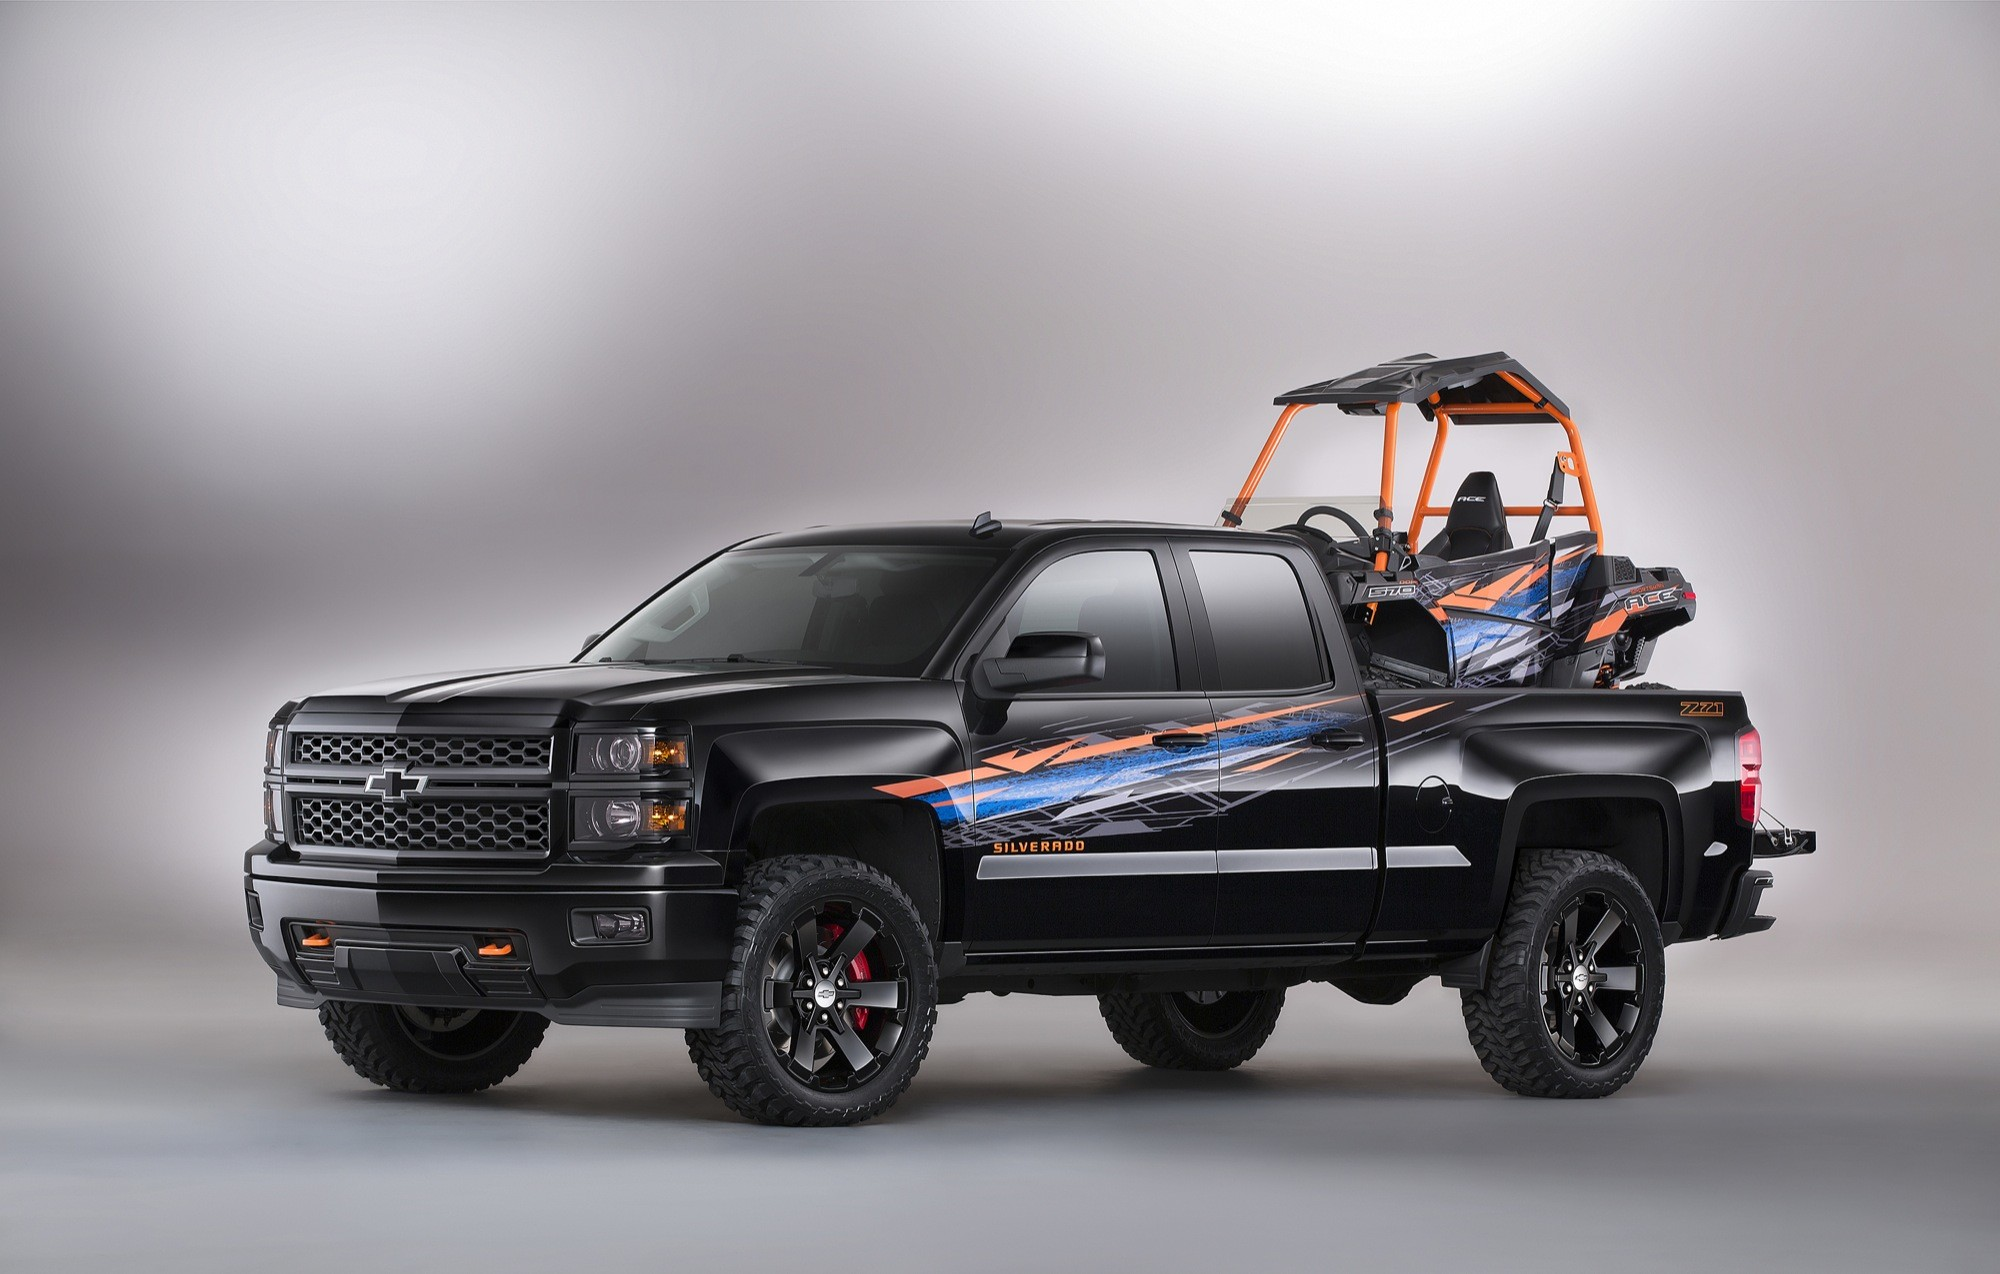 2000x1274 2015 Chevrolet Silverado High Definition Wallpapers